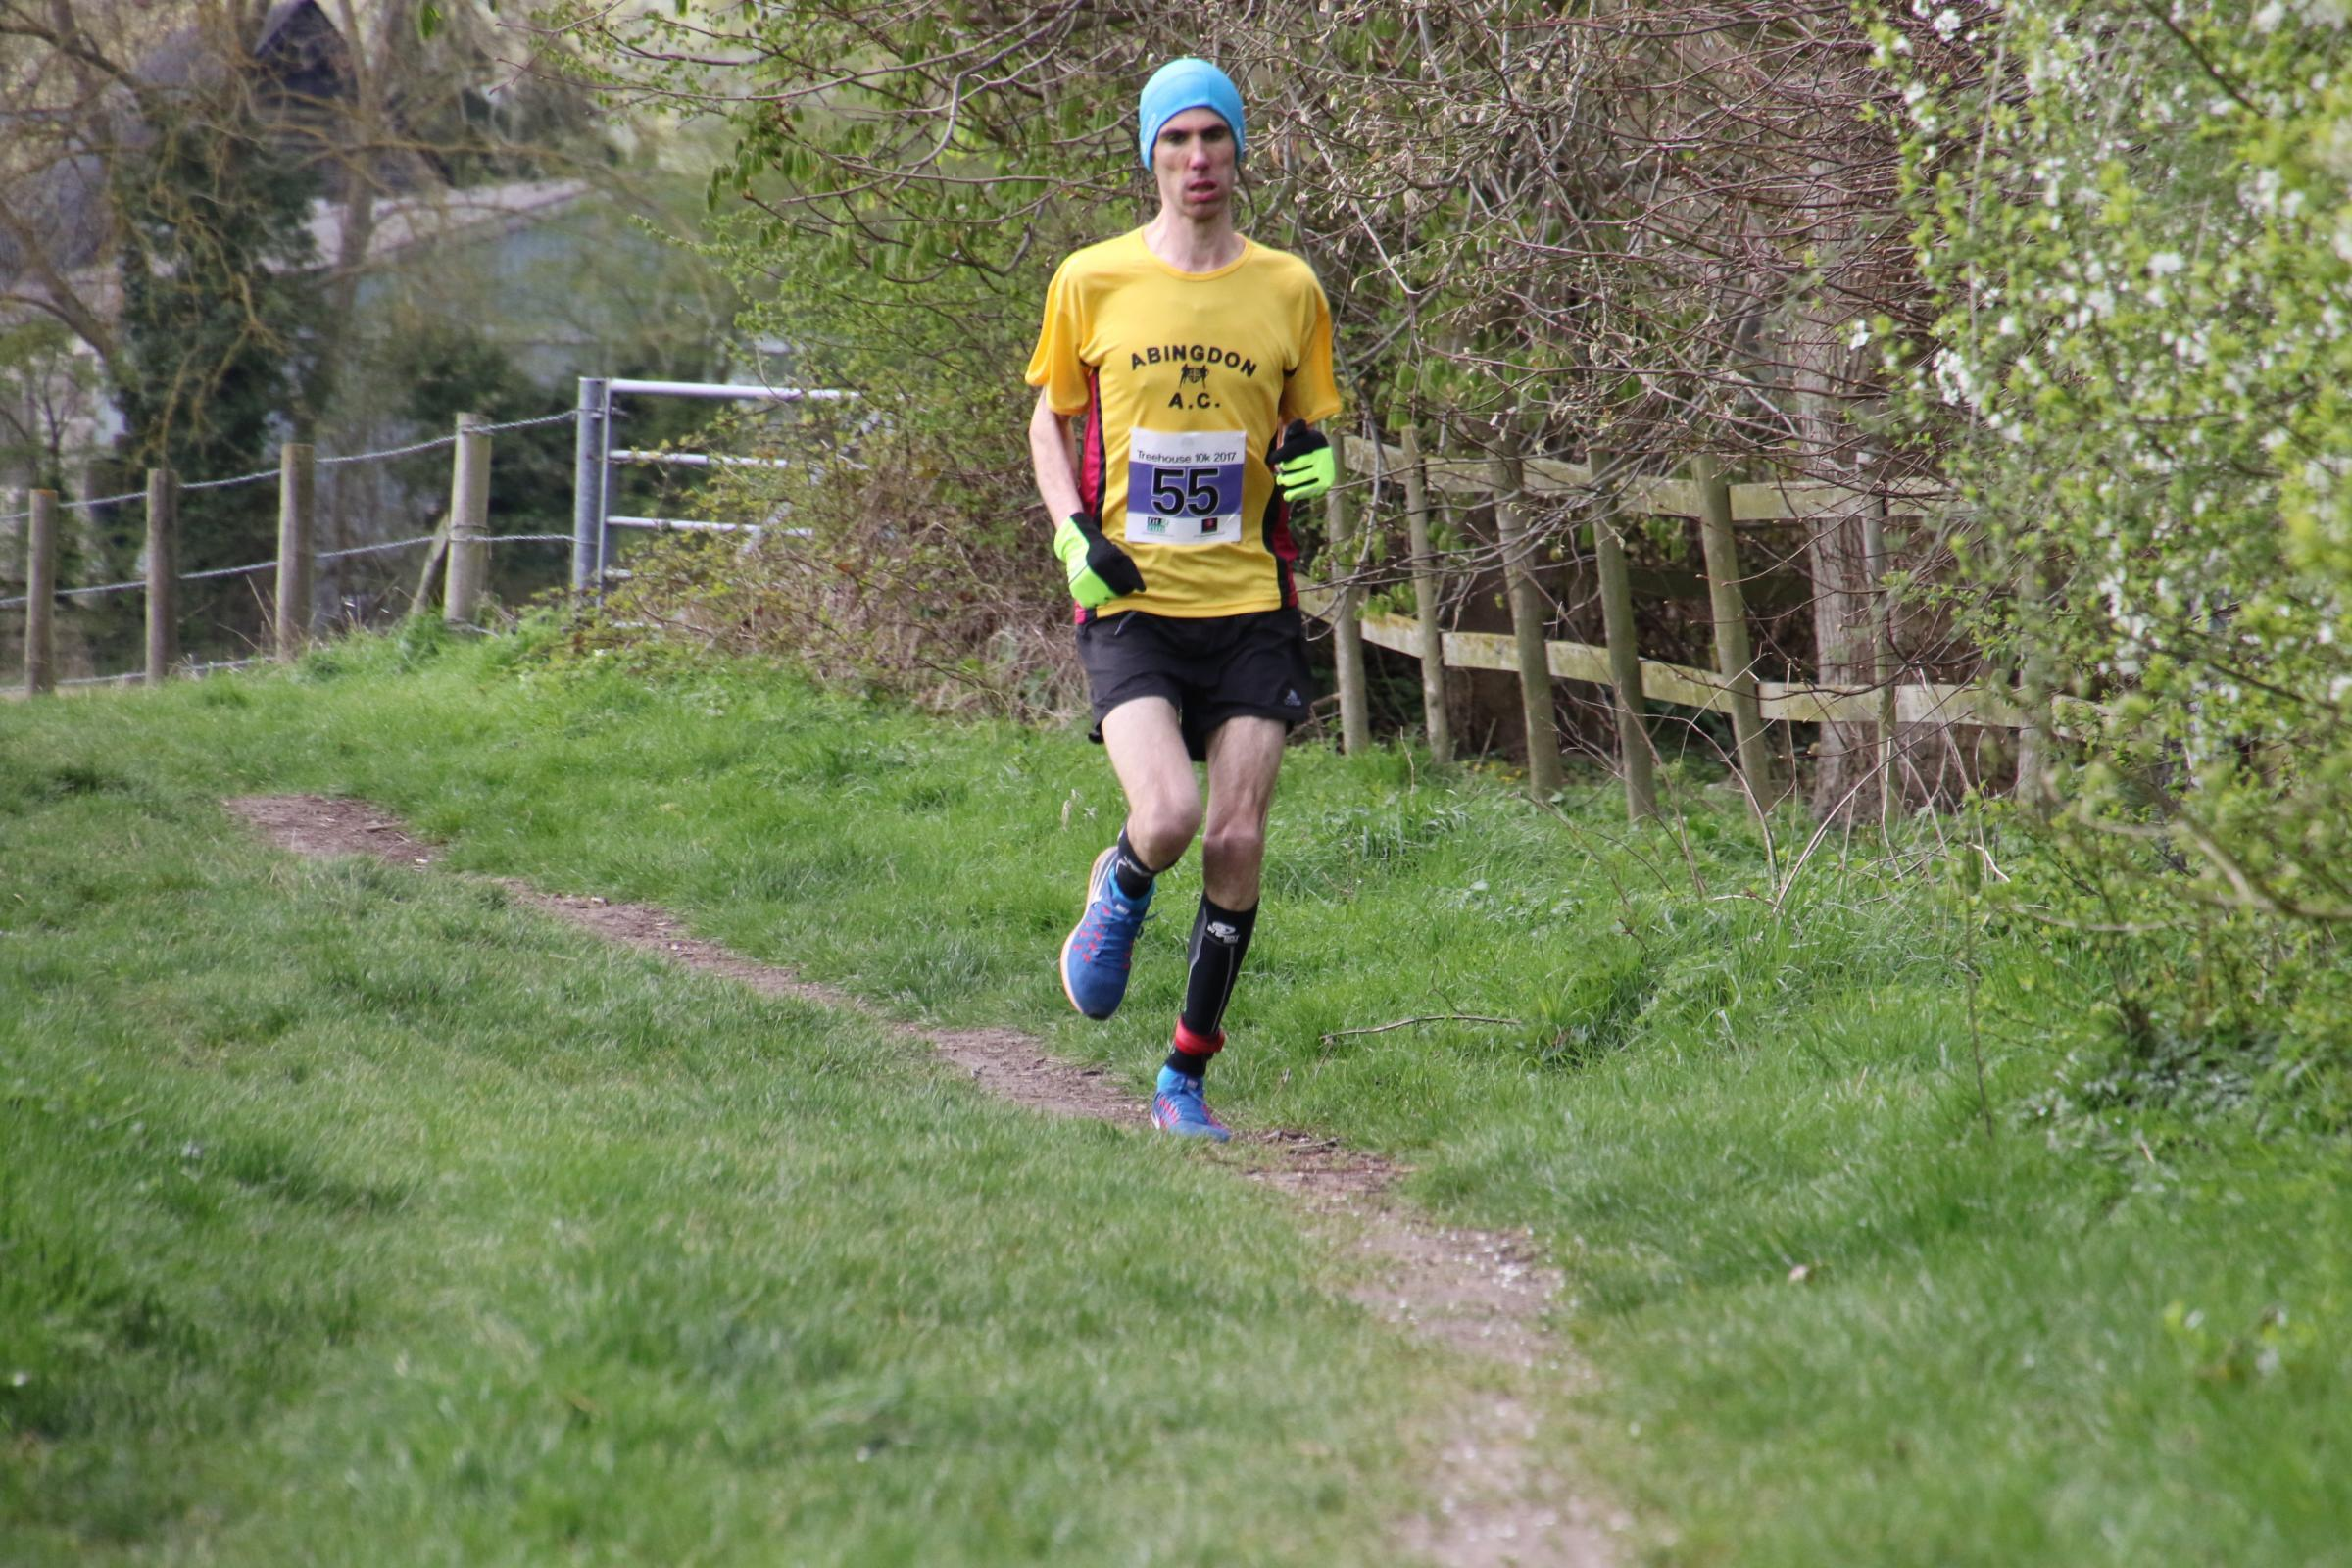 Abingdon's Sebastien Garrigues on his way to second at the Treehouse School 10k Picture: Barry Cornelius